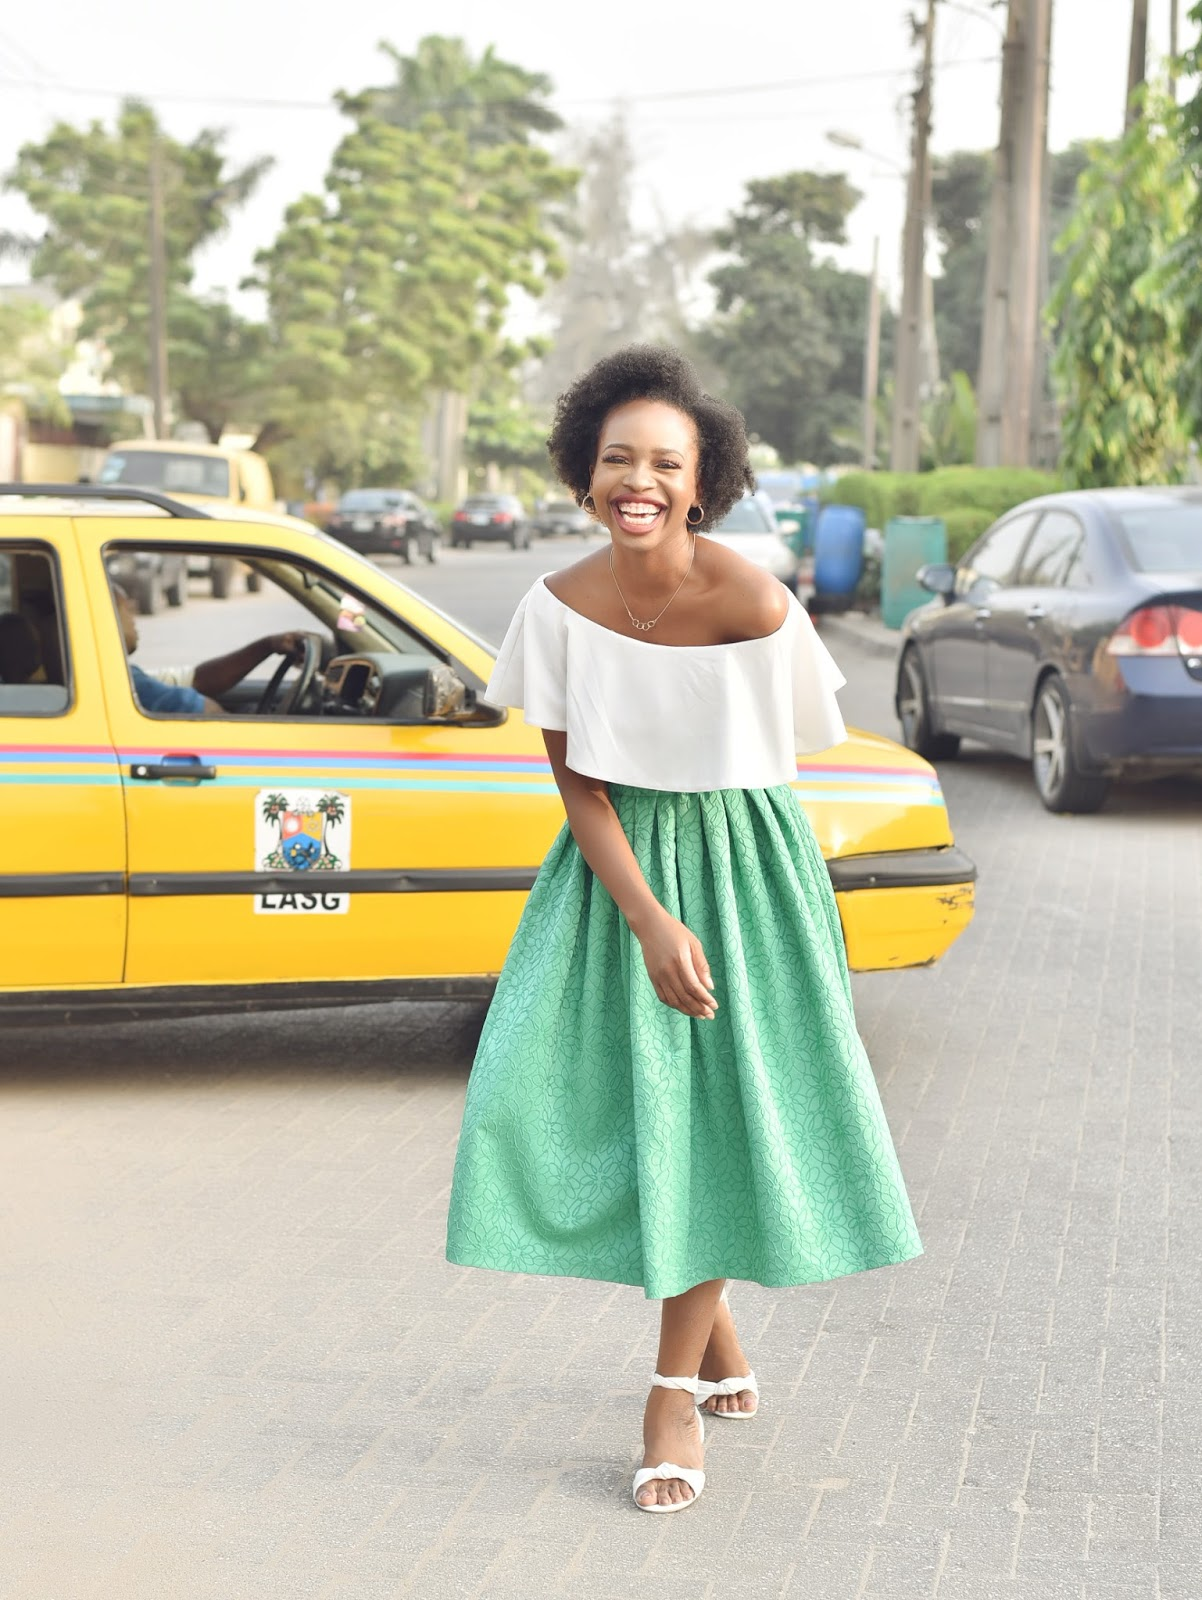 Fashion Shoot with Yellow Lagos Taxi